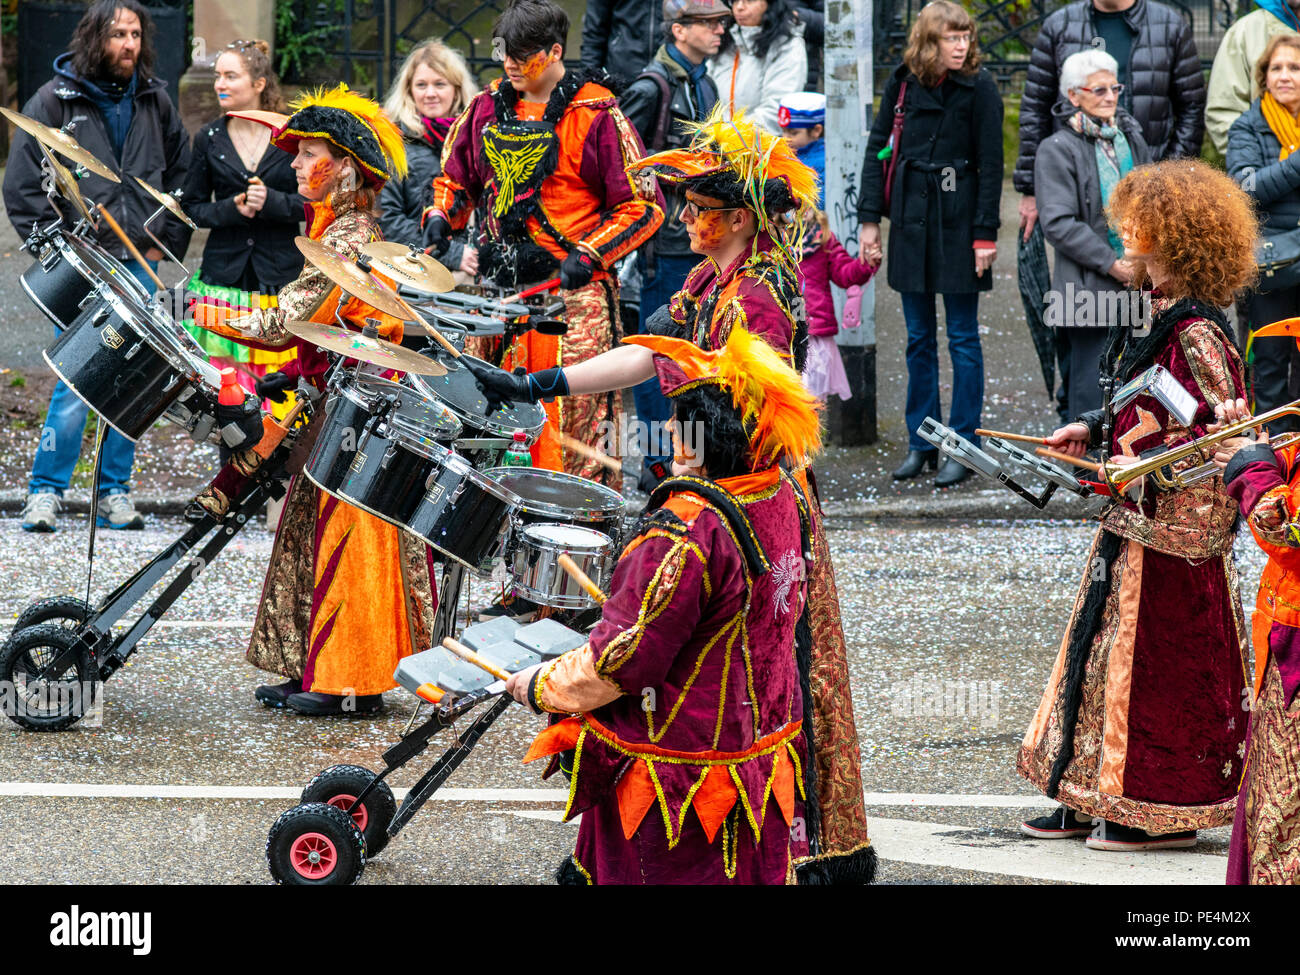 Phoenixkrechzer Guggemusik Ramstein, German marching band, Strasbourg carnival parade, Alsace, France, Europe, - Stock Image